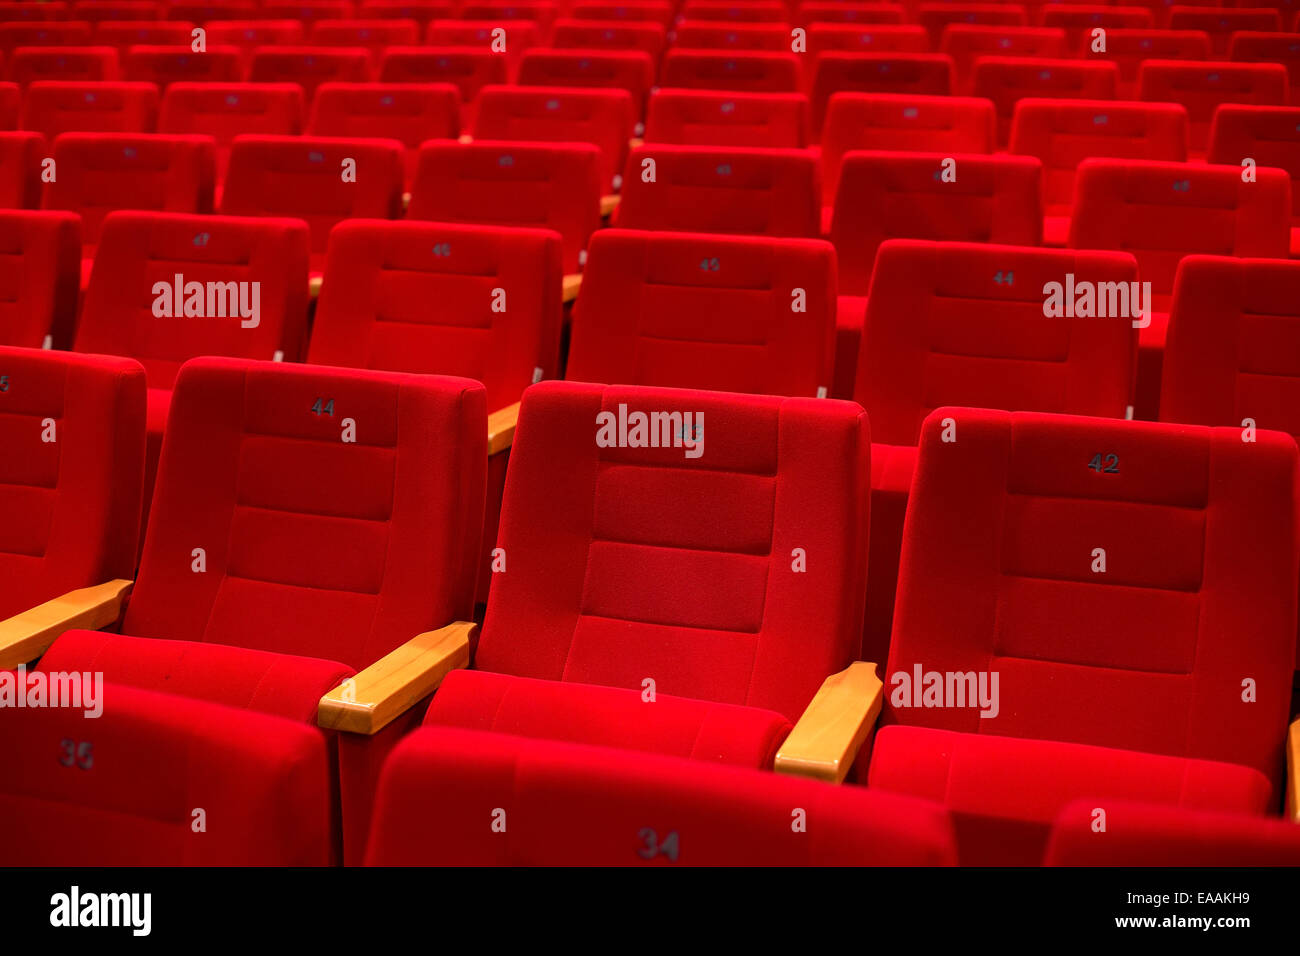 Red and empty theater seats in a row Stock Photo